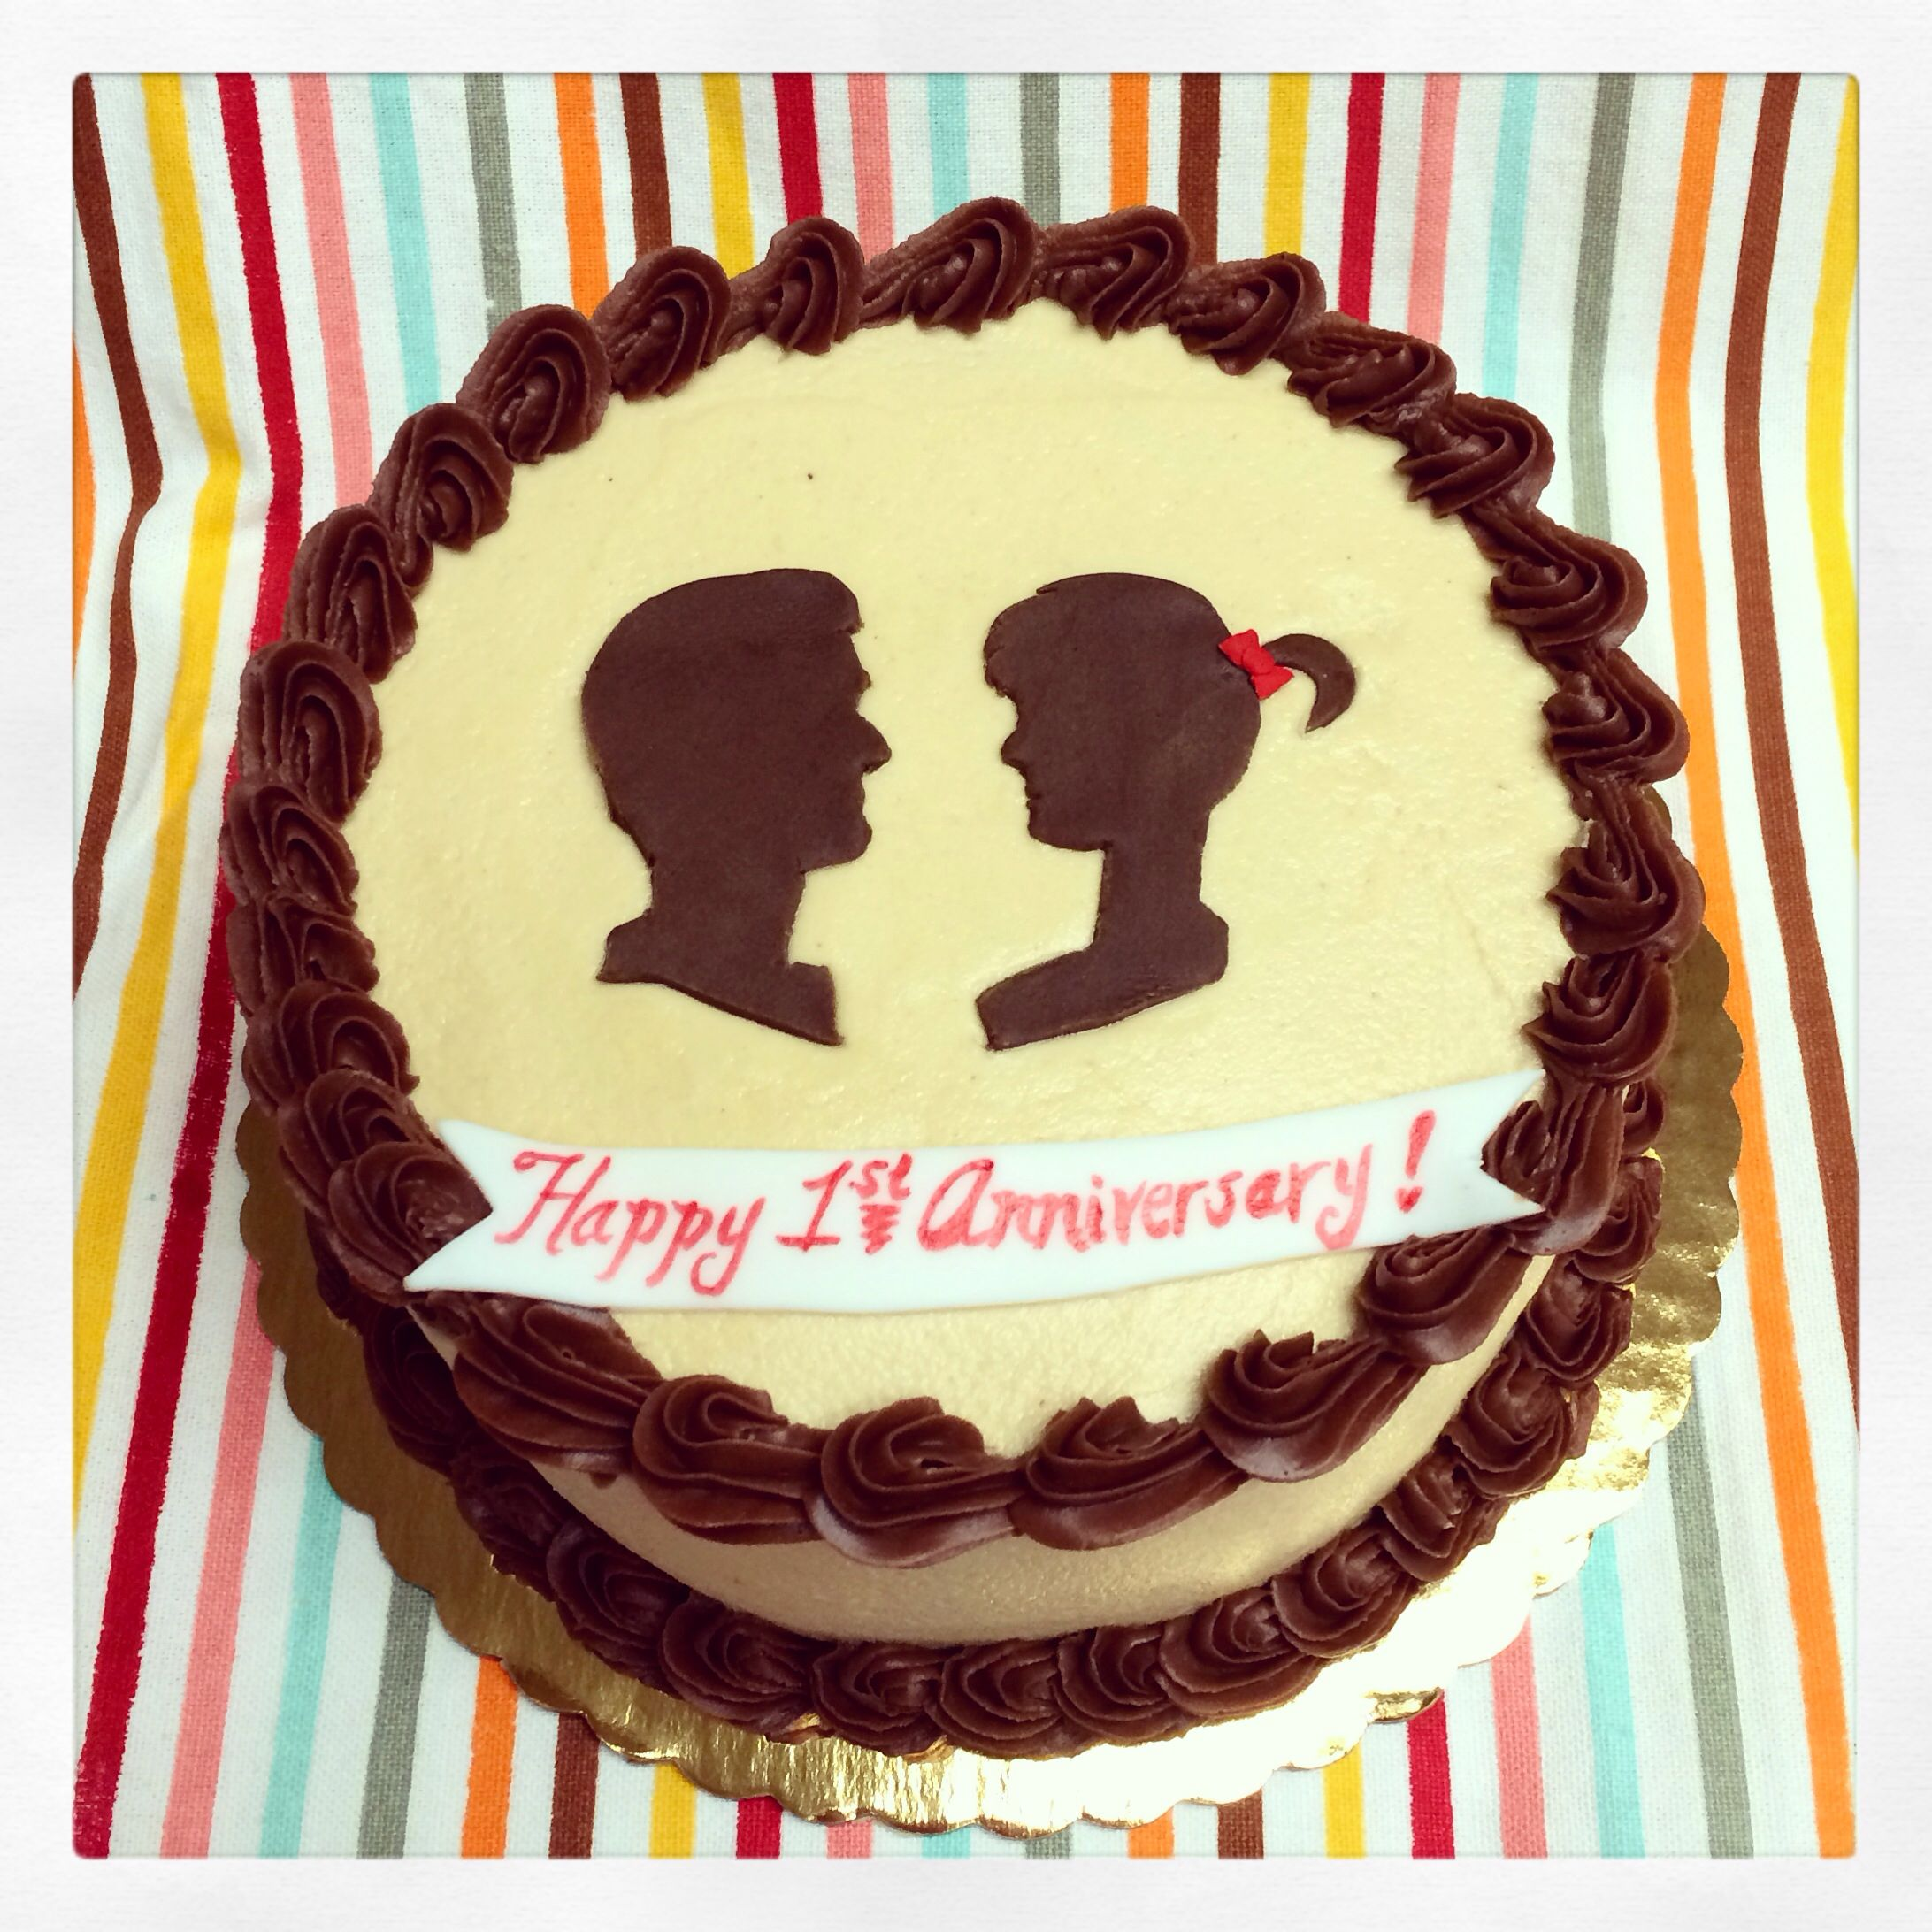 First anniversary cake with silhouettes.